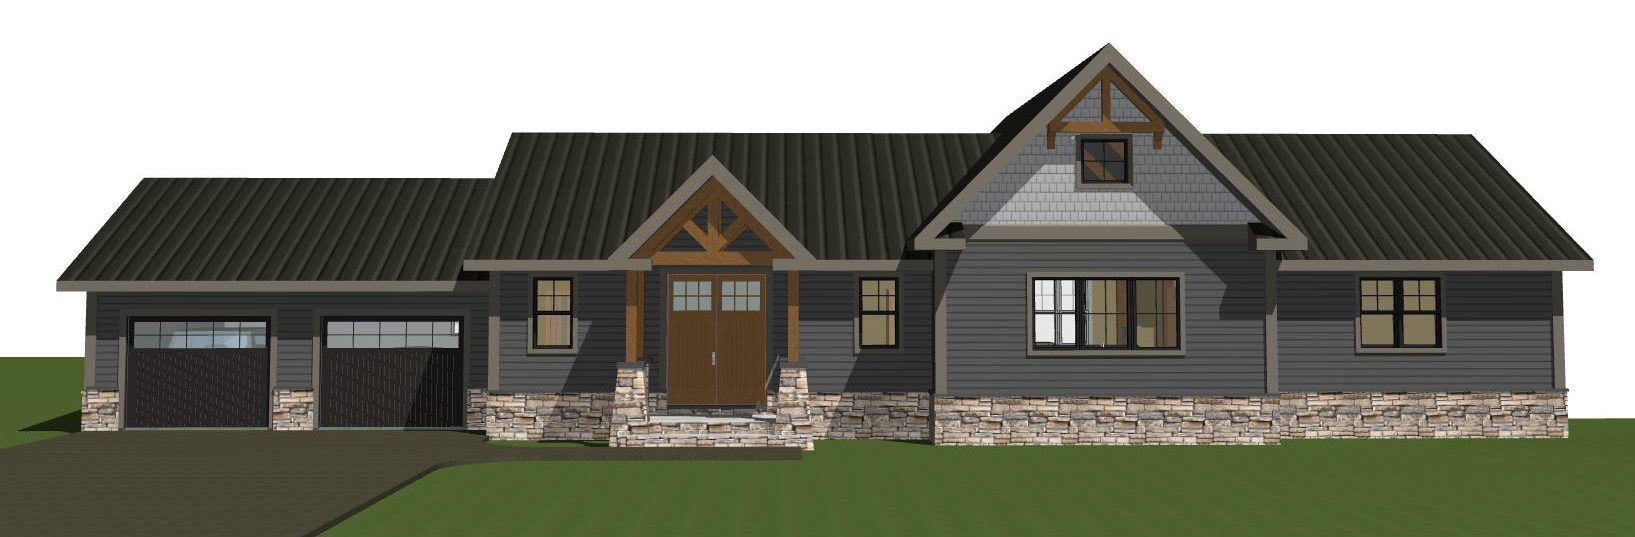 Single Level Partial Post And Beam Homes The Rosewood Yankee Barn Homes Post And Beam Barn House